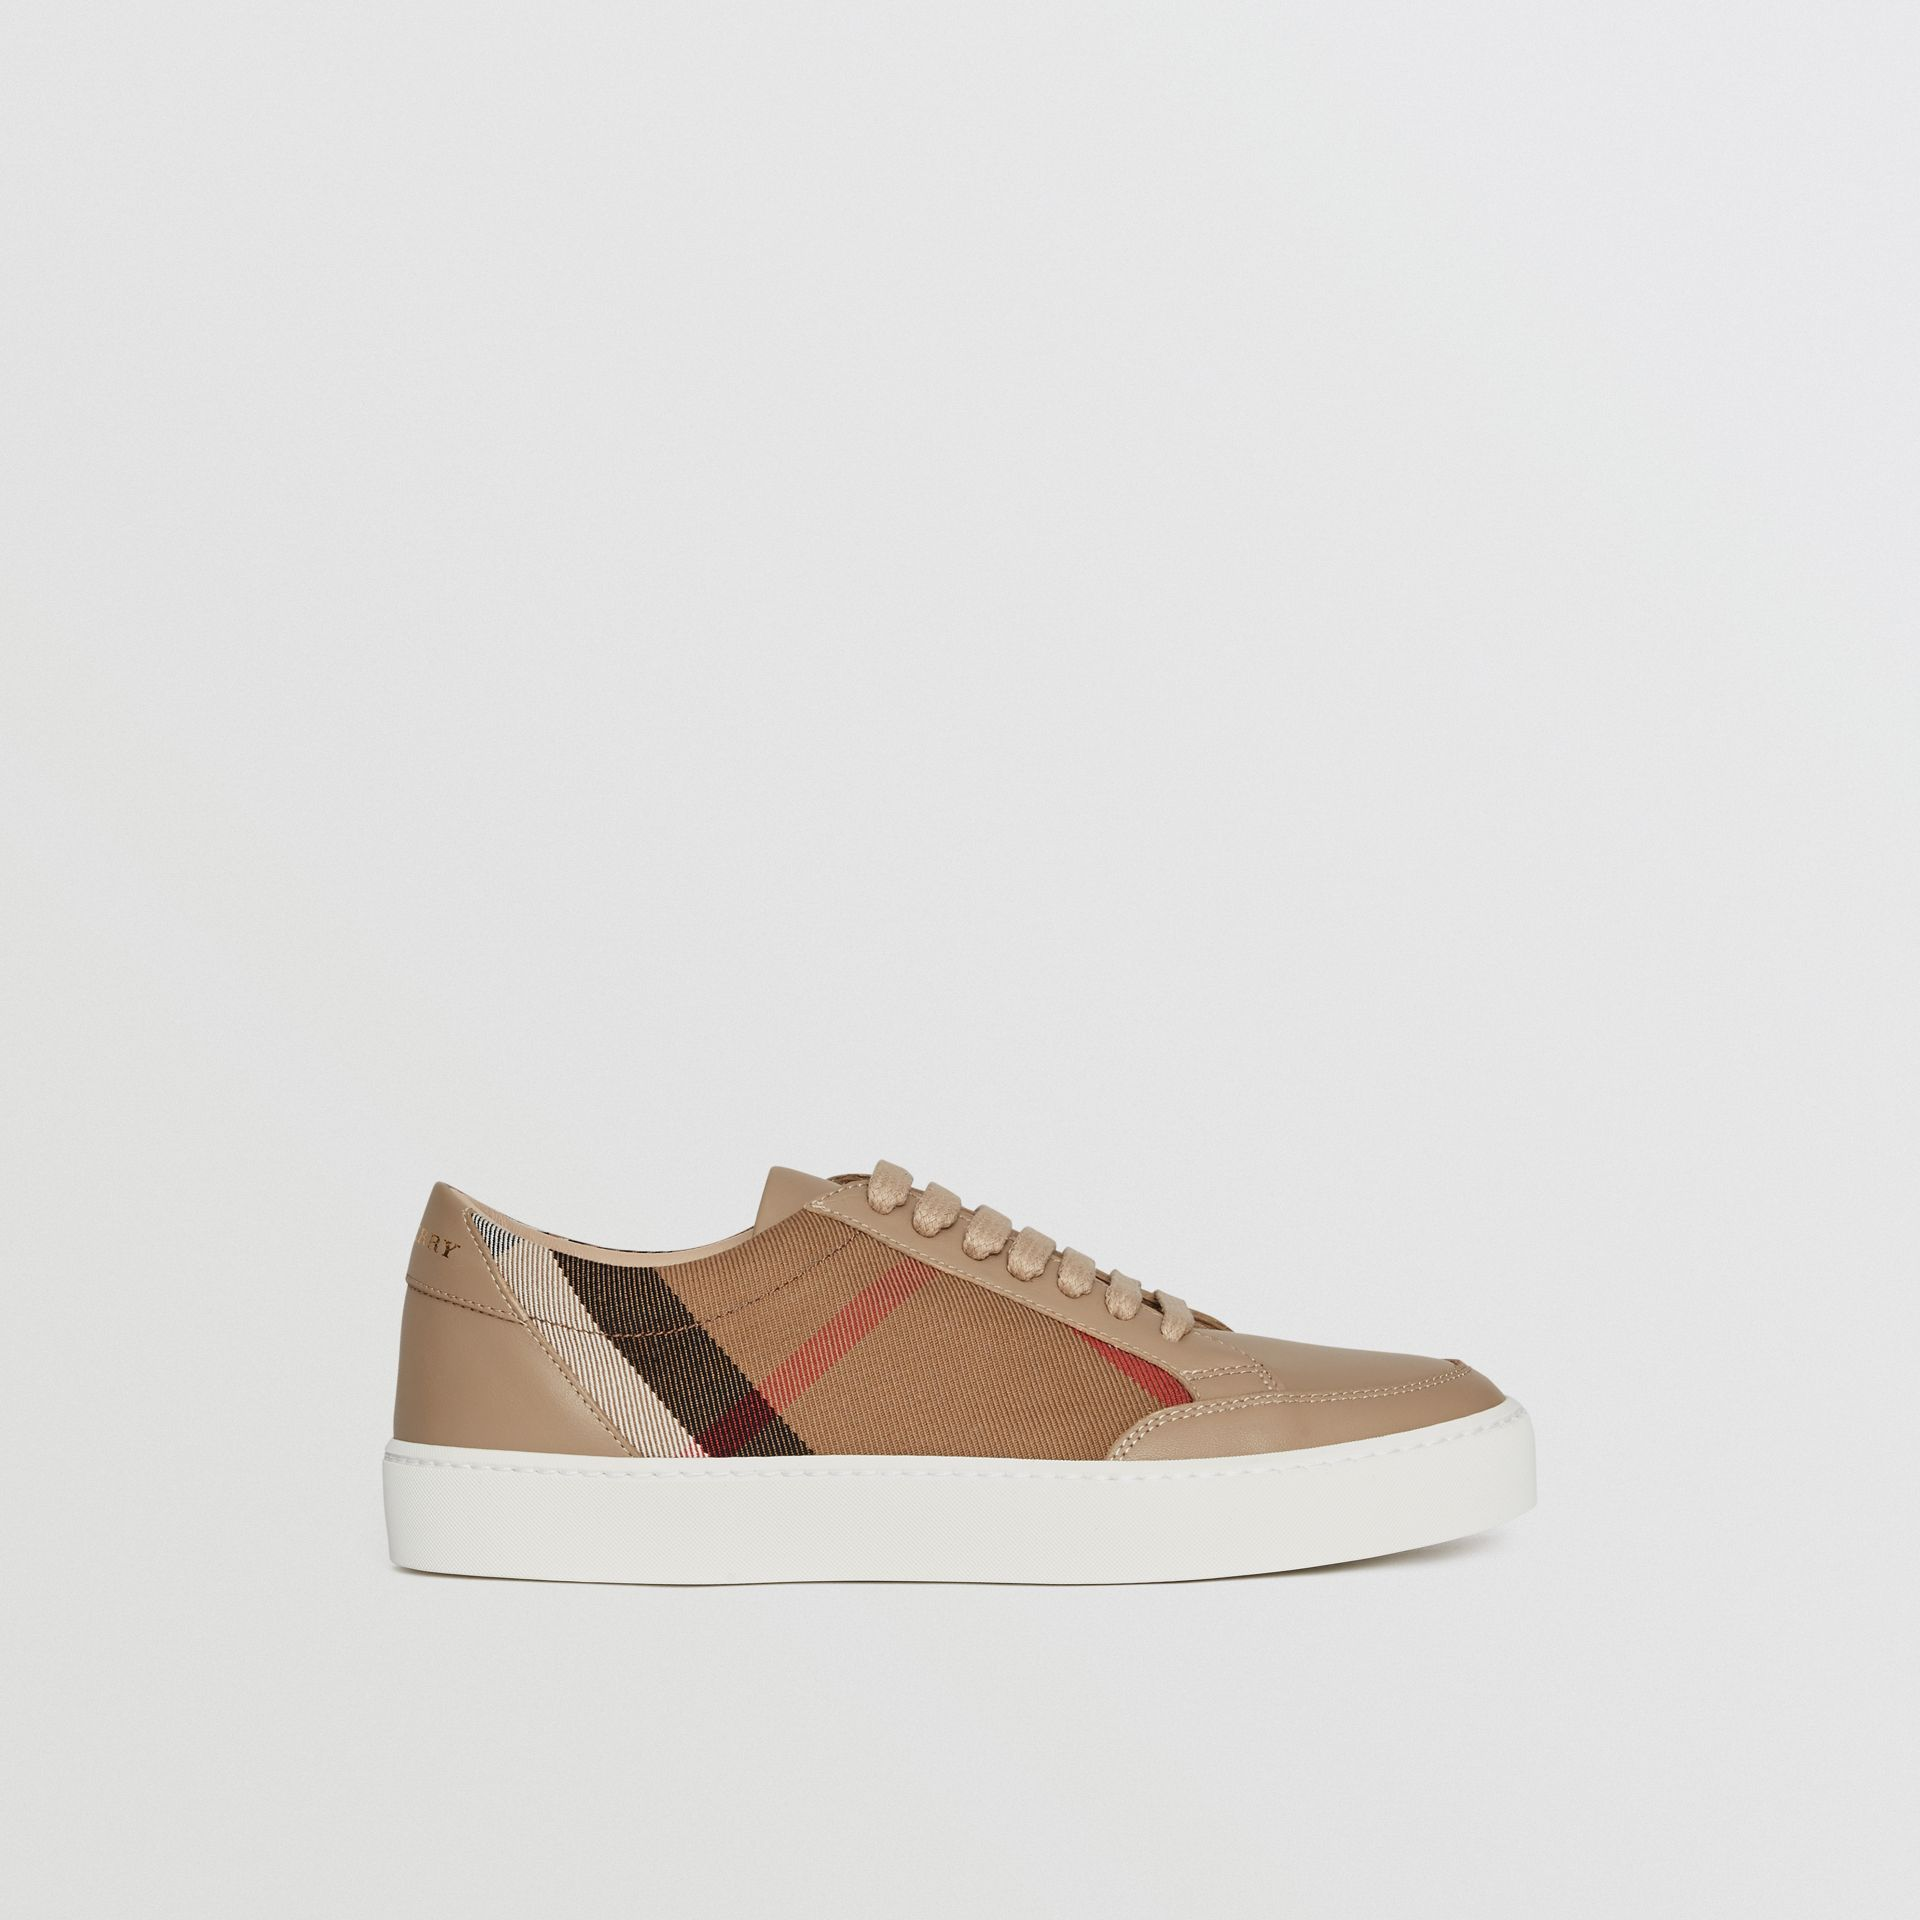 Check Detail Leather Sneakers in House Check/ Nude - Women | Burberry Canada - gallery image 5